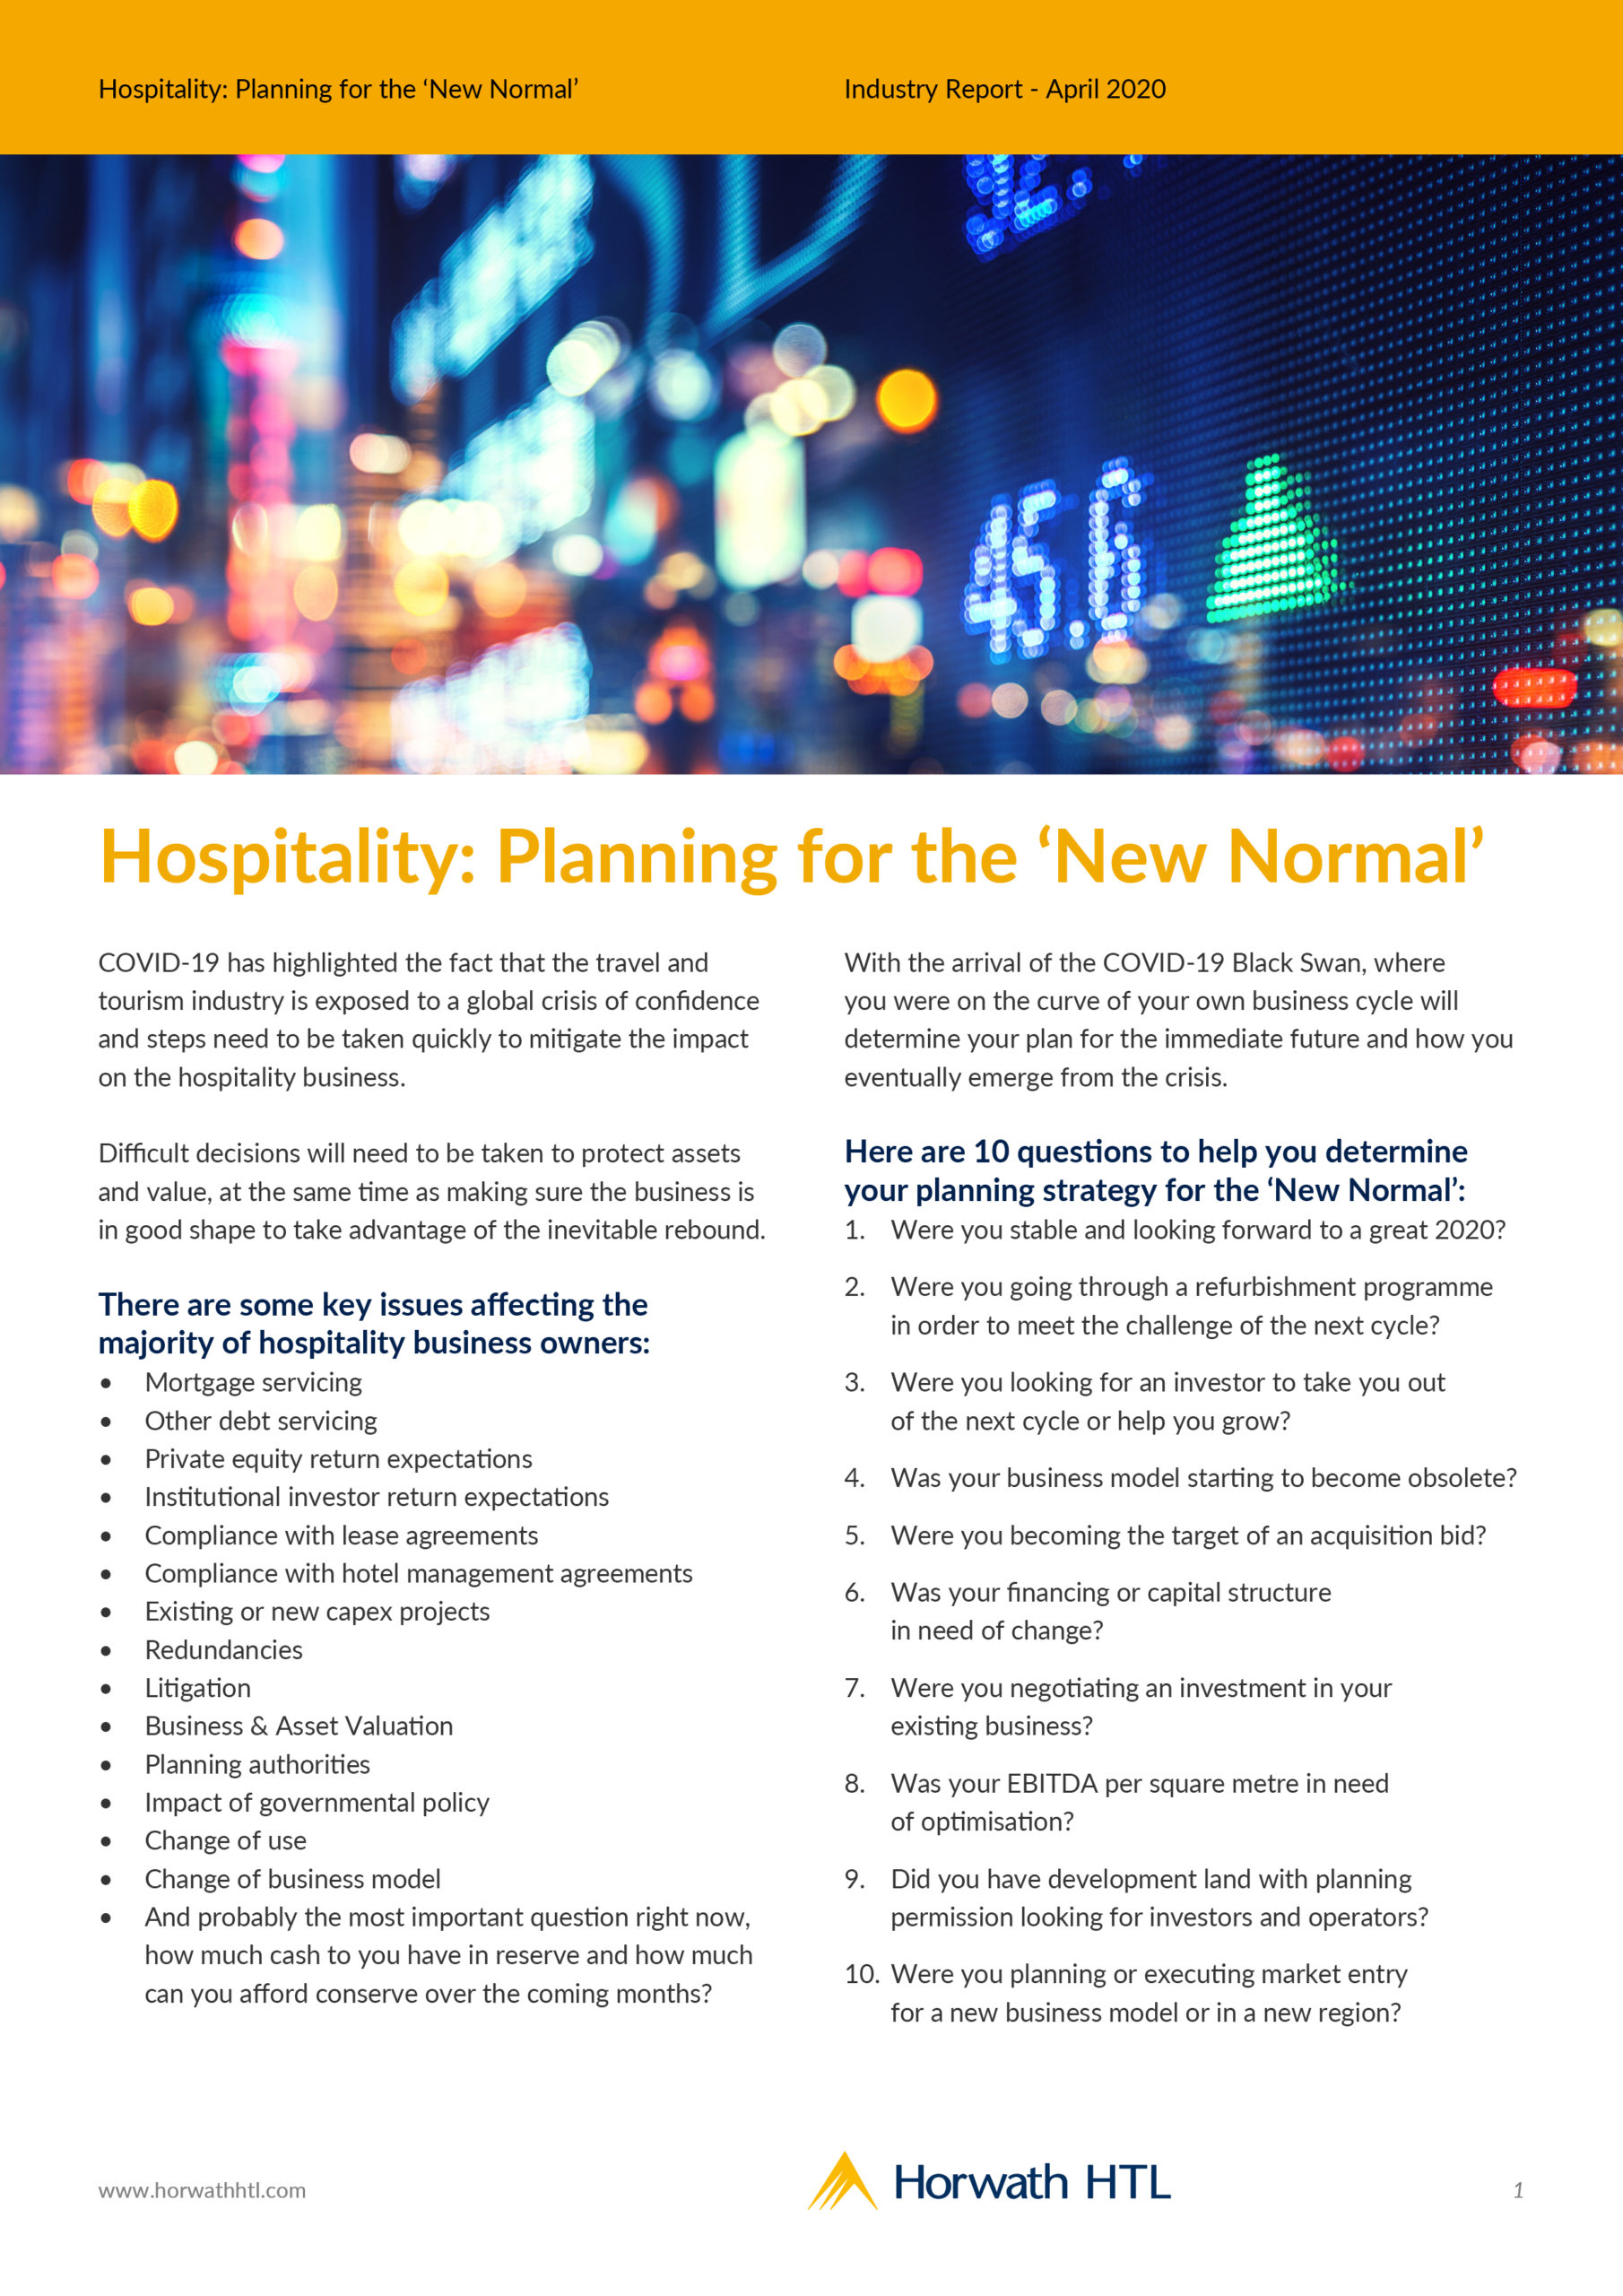 Industry Report: Hospitality – Planning for the 'New Normal'